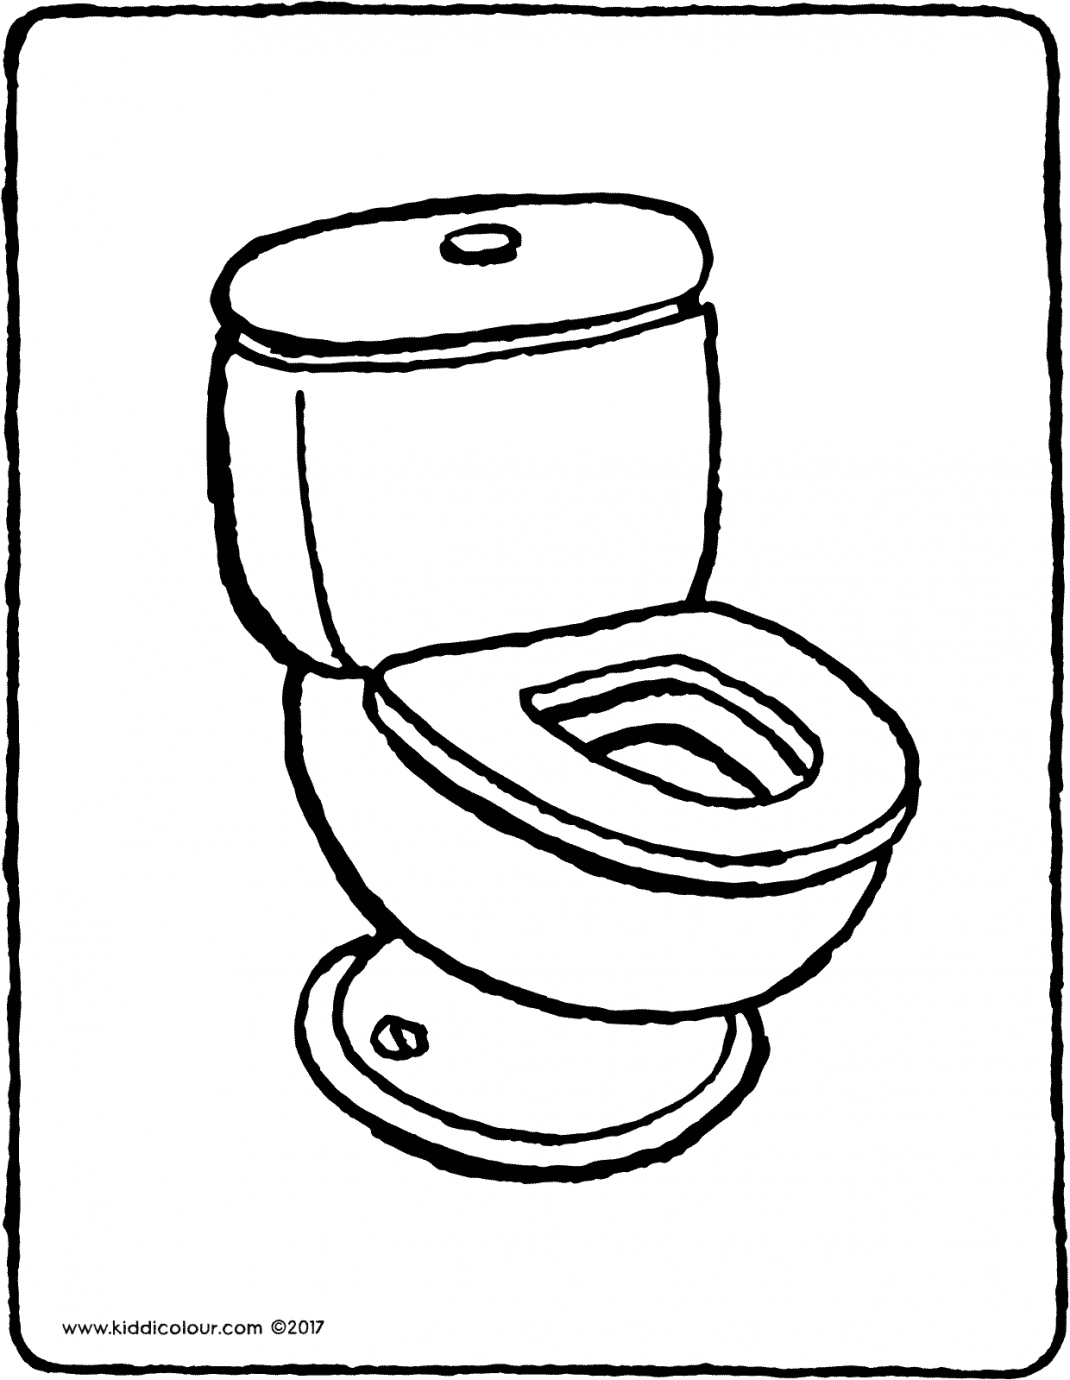 toilet colouring page drawing picture 01V